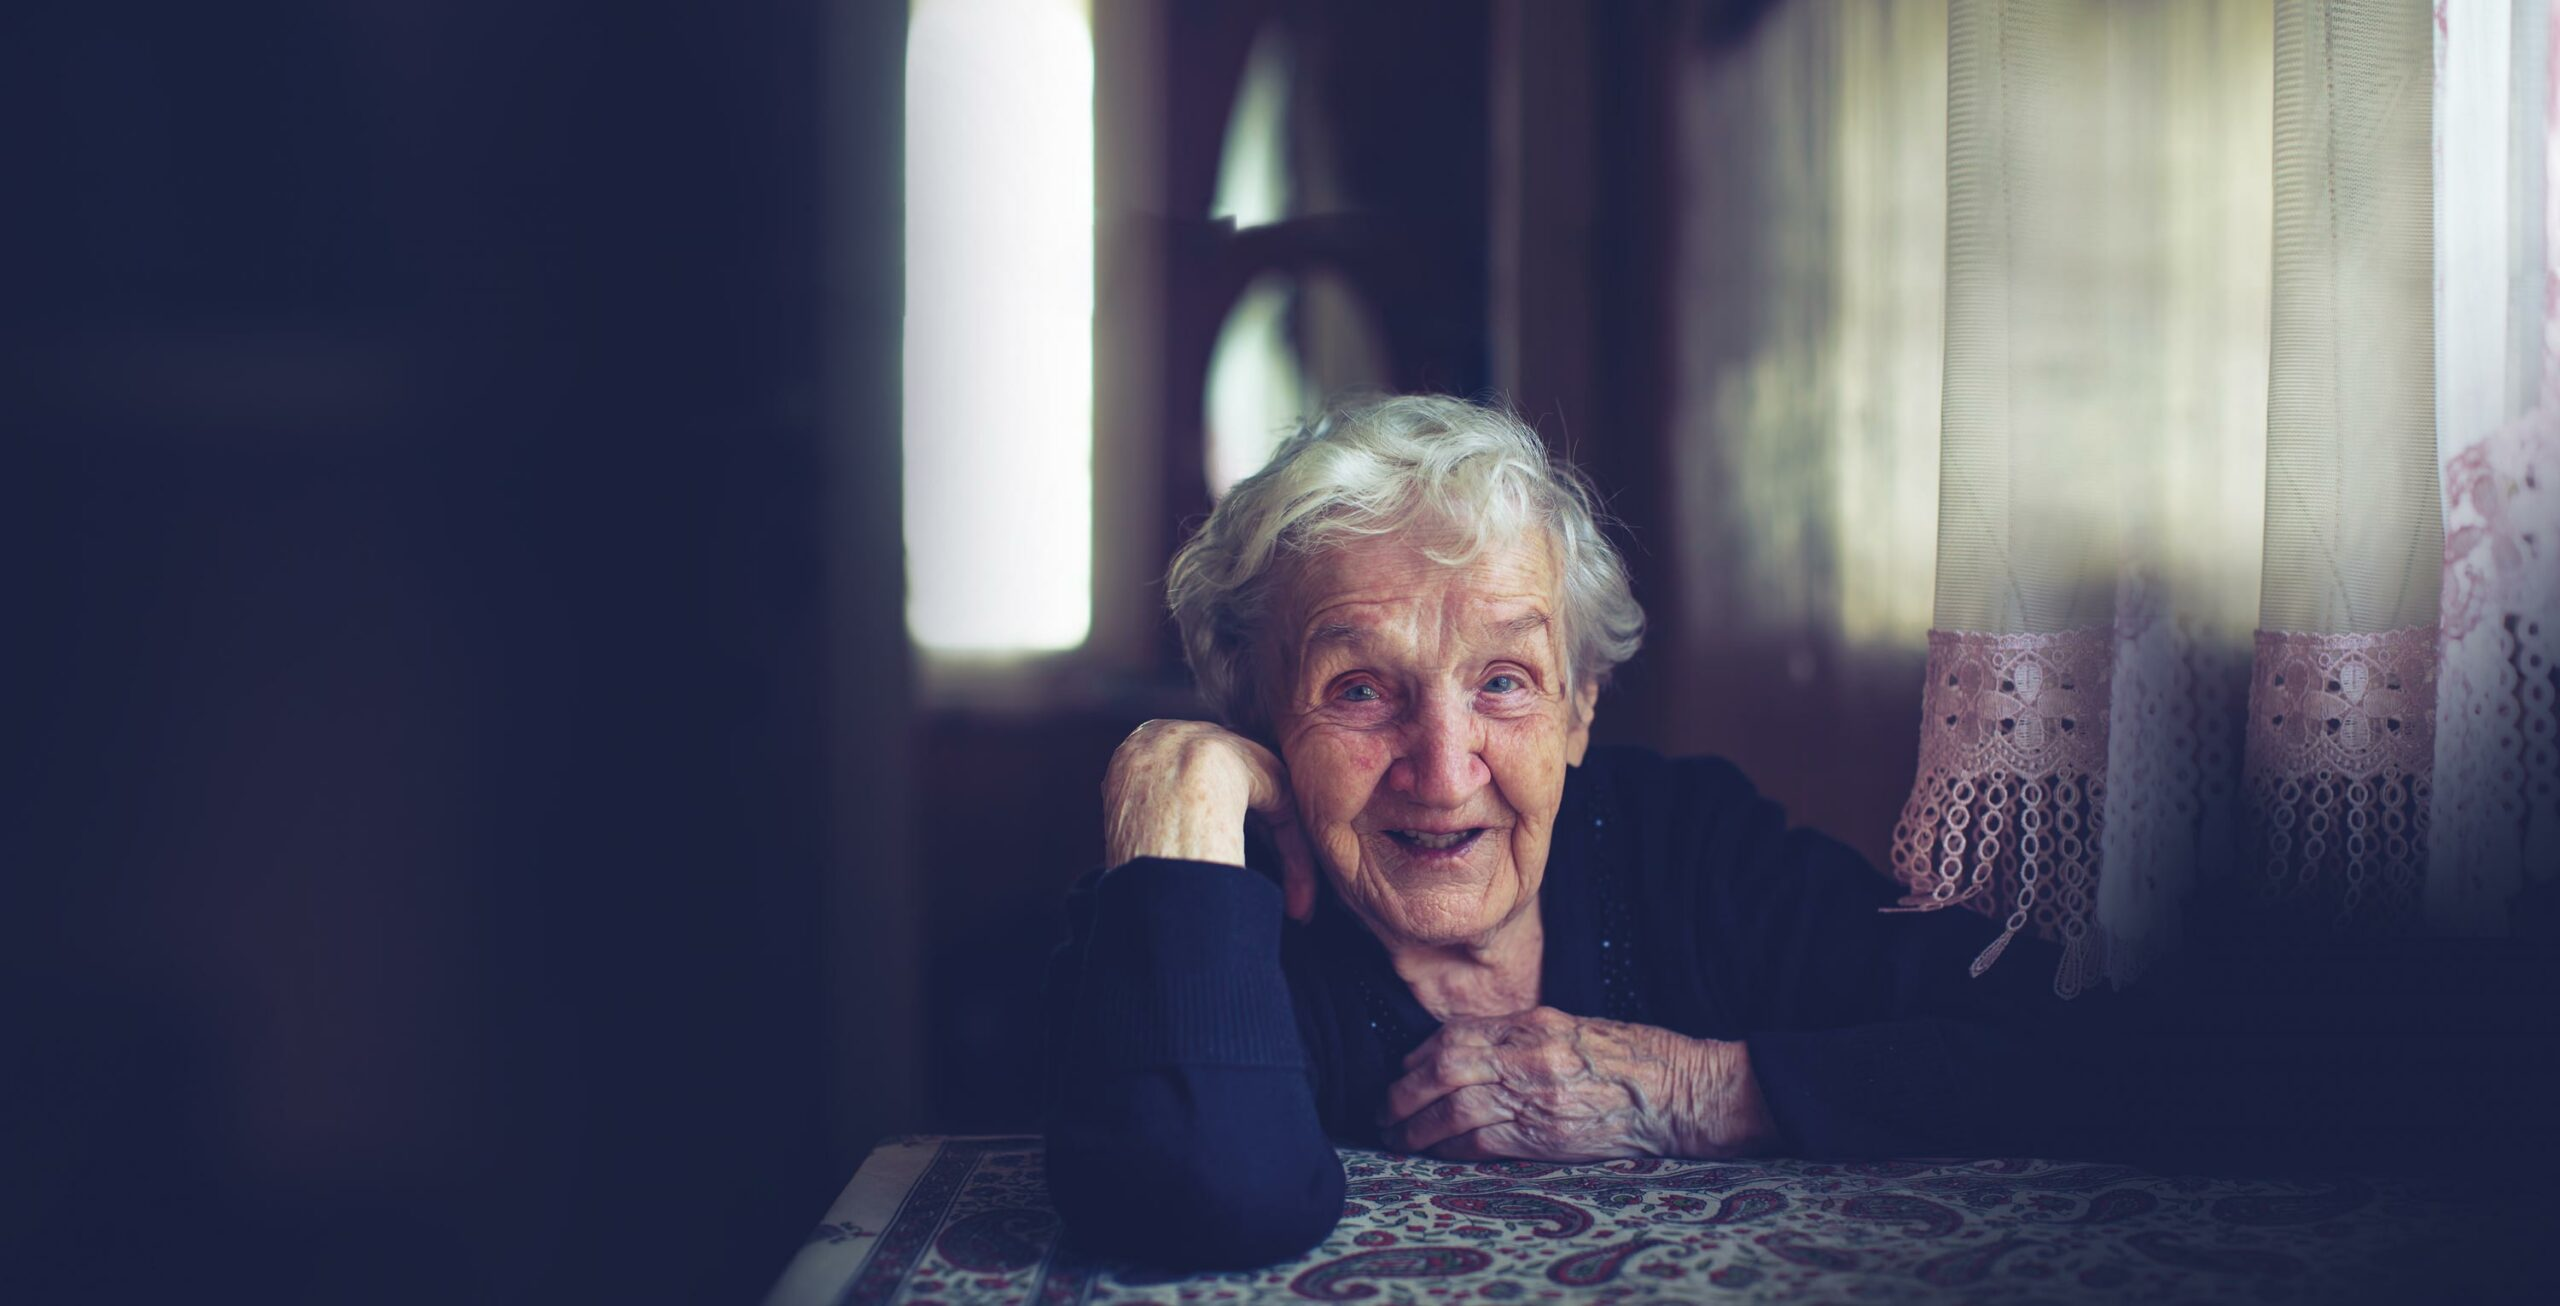 Smiling elderly woman sitting at a table